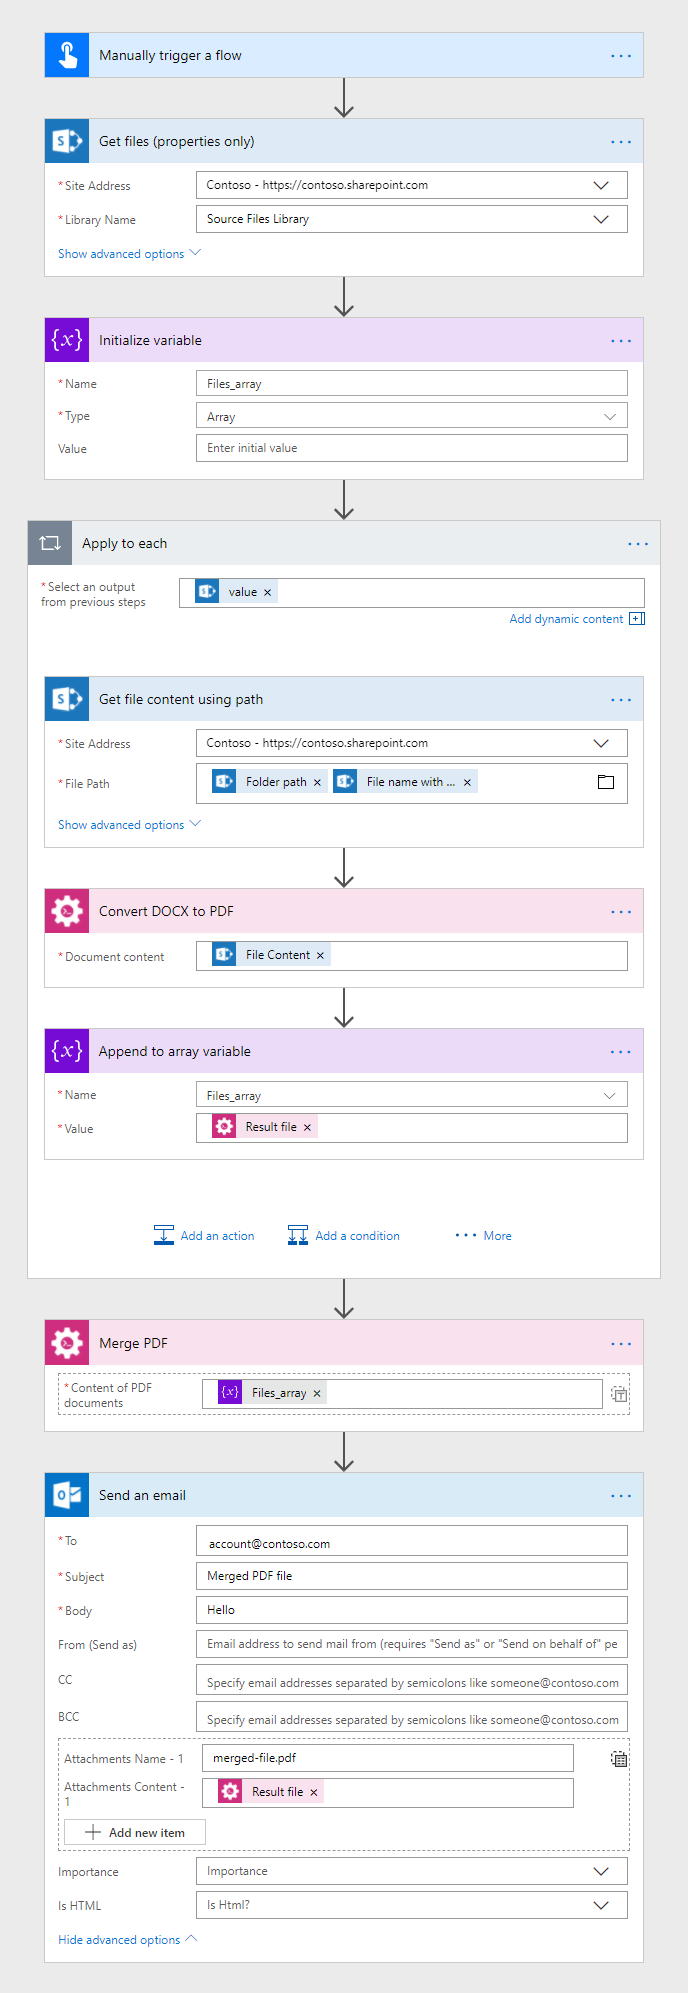 How to merge and split PDF files in Microsoft Flow, Azure